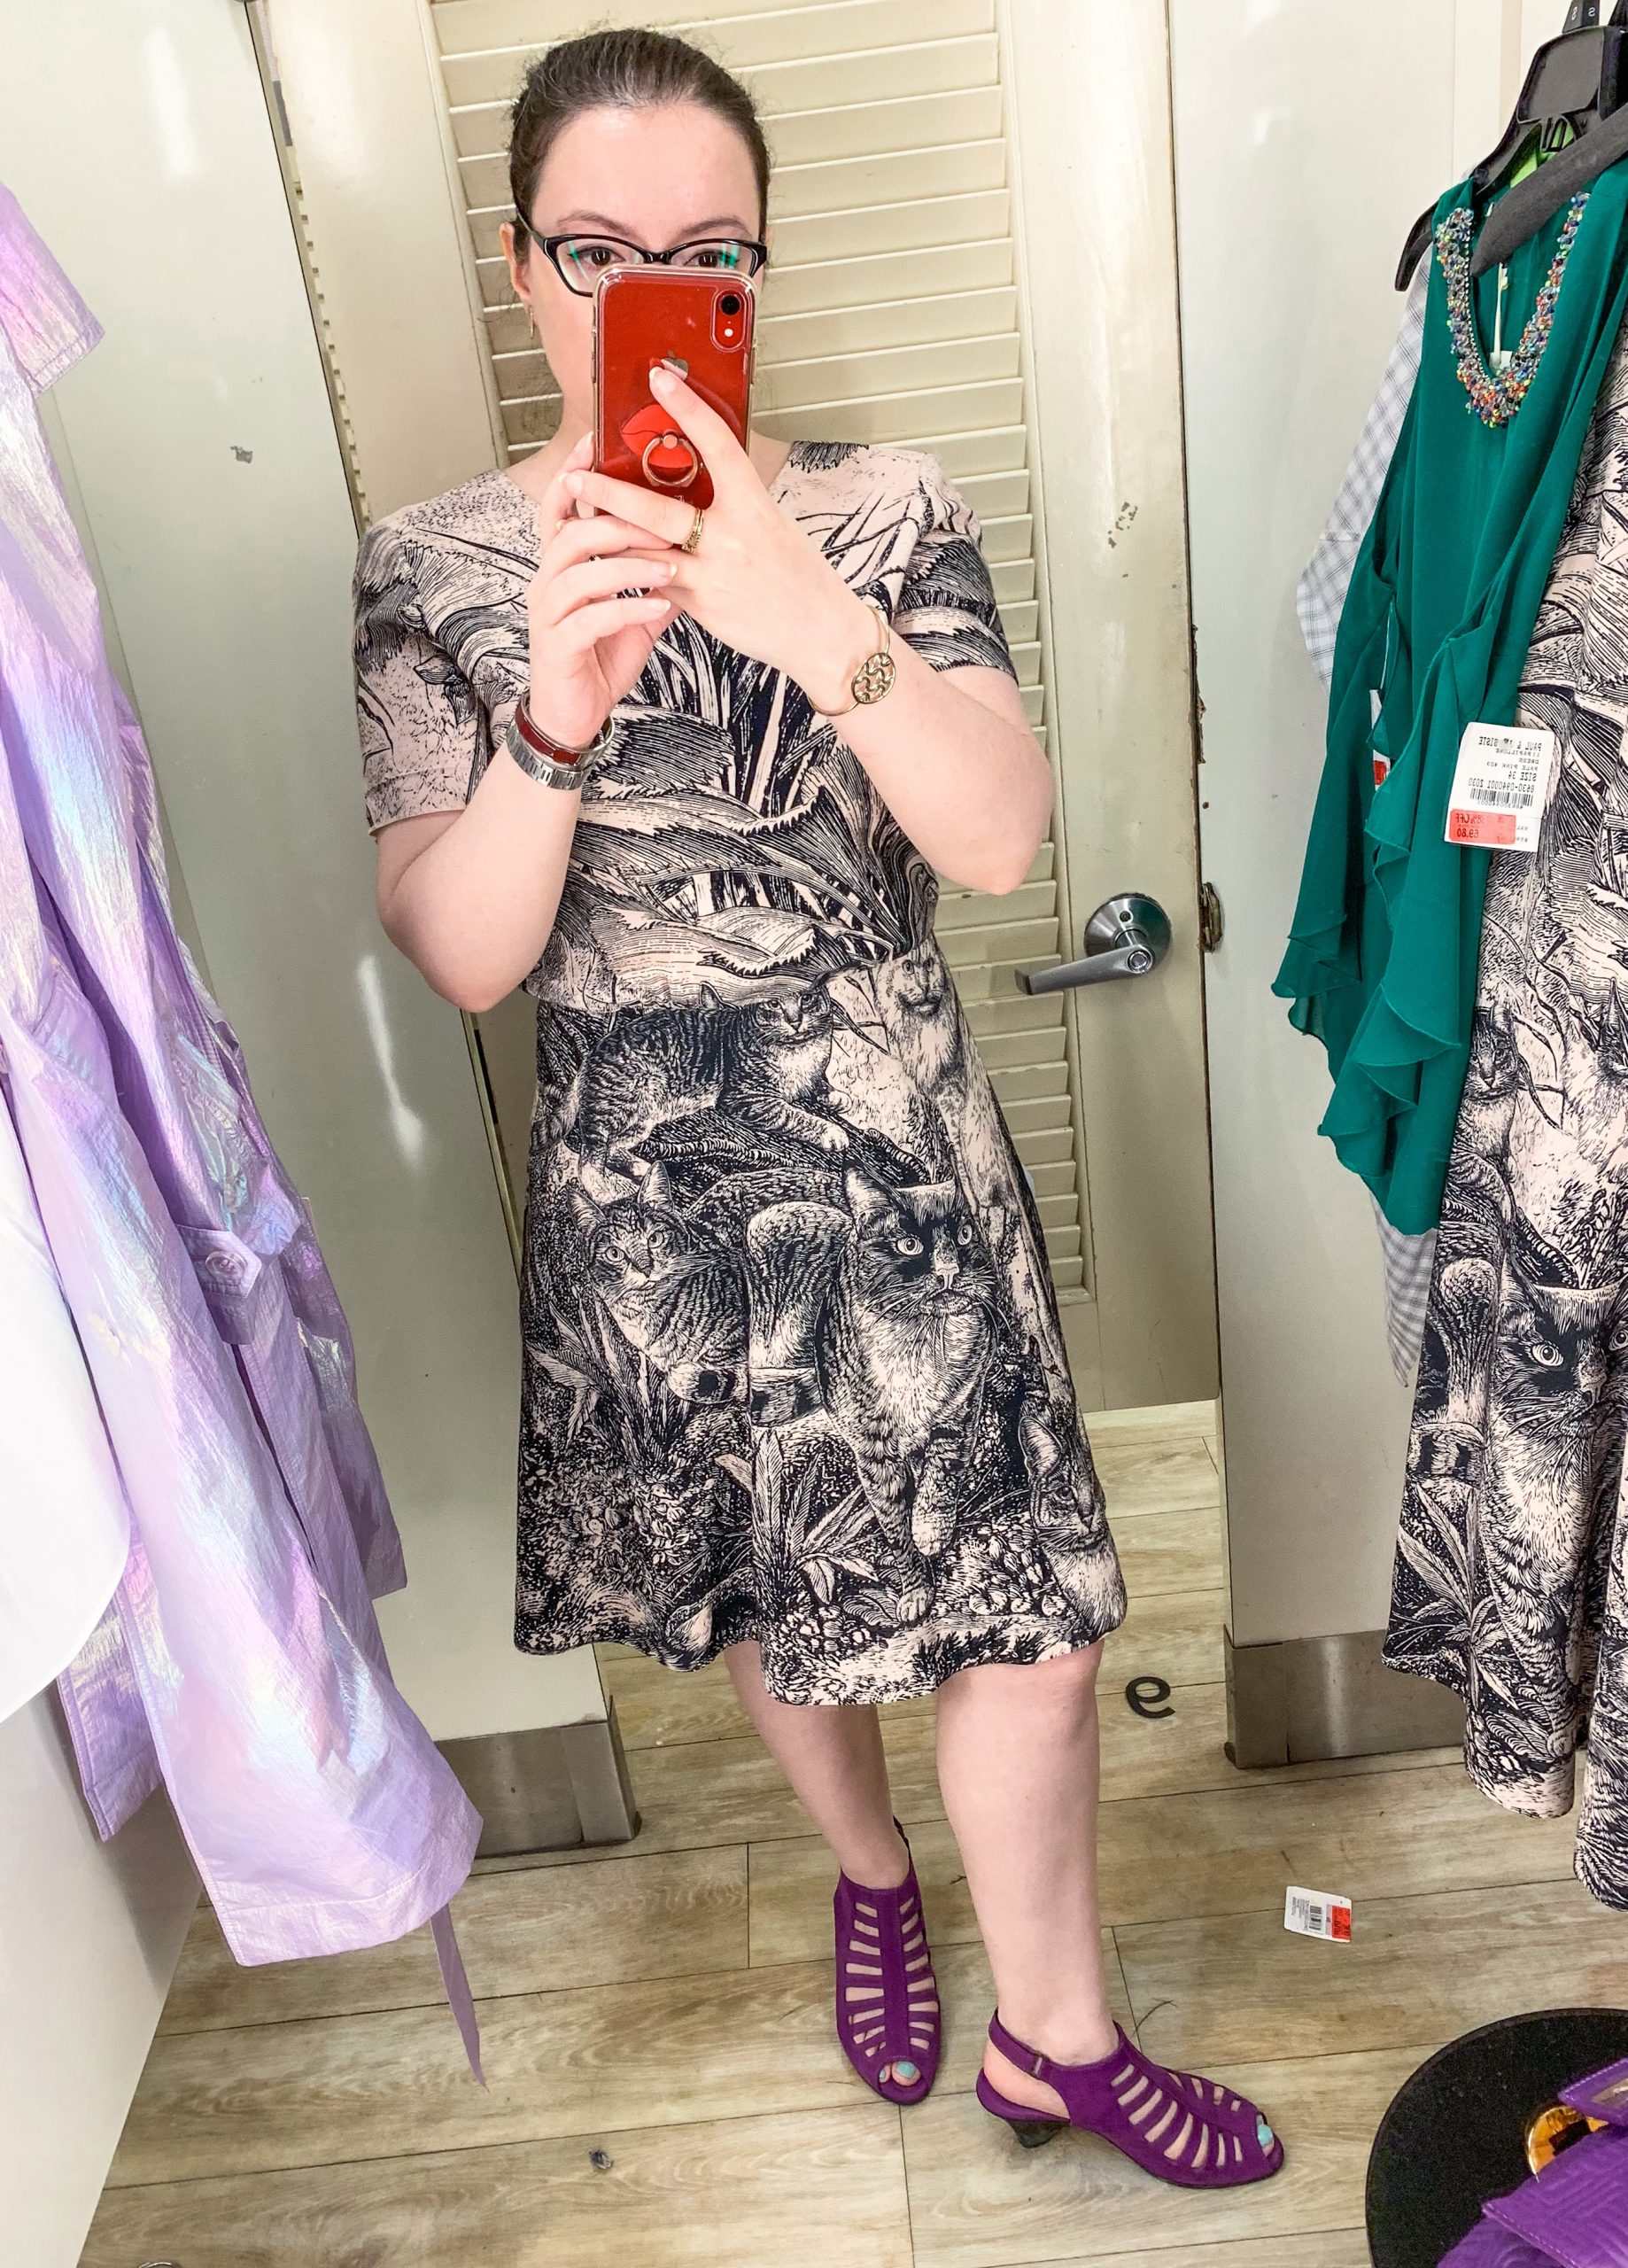 NYC Fashion blogger trying on a dress inside Century 21 department store dressing room